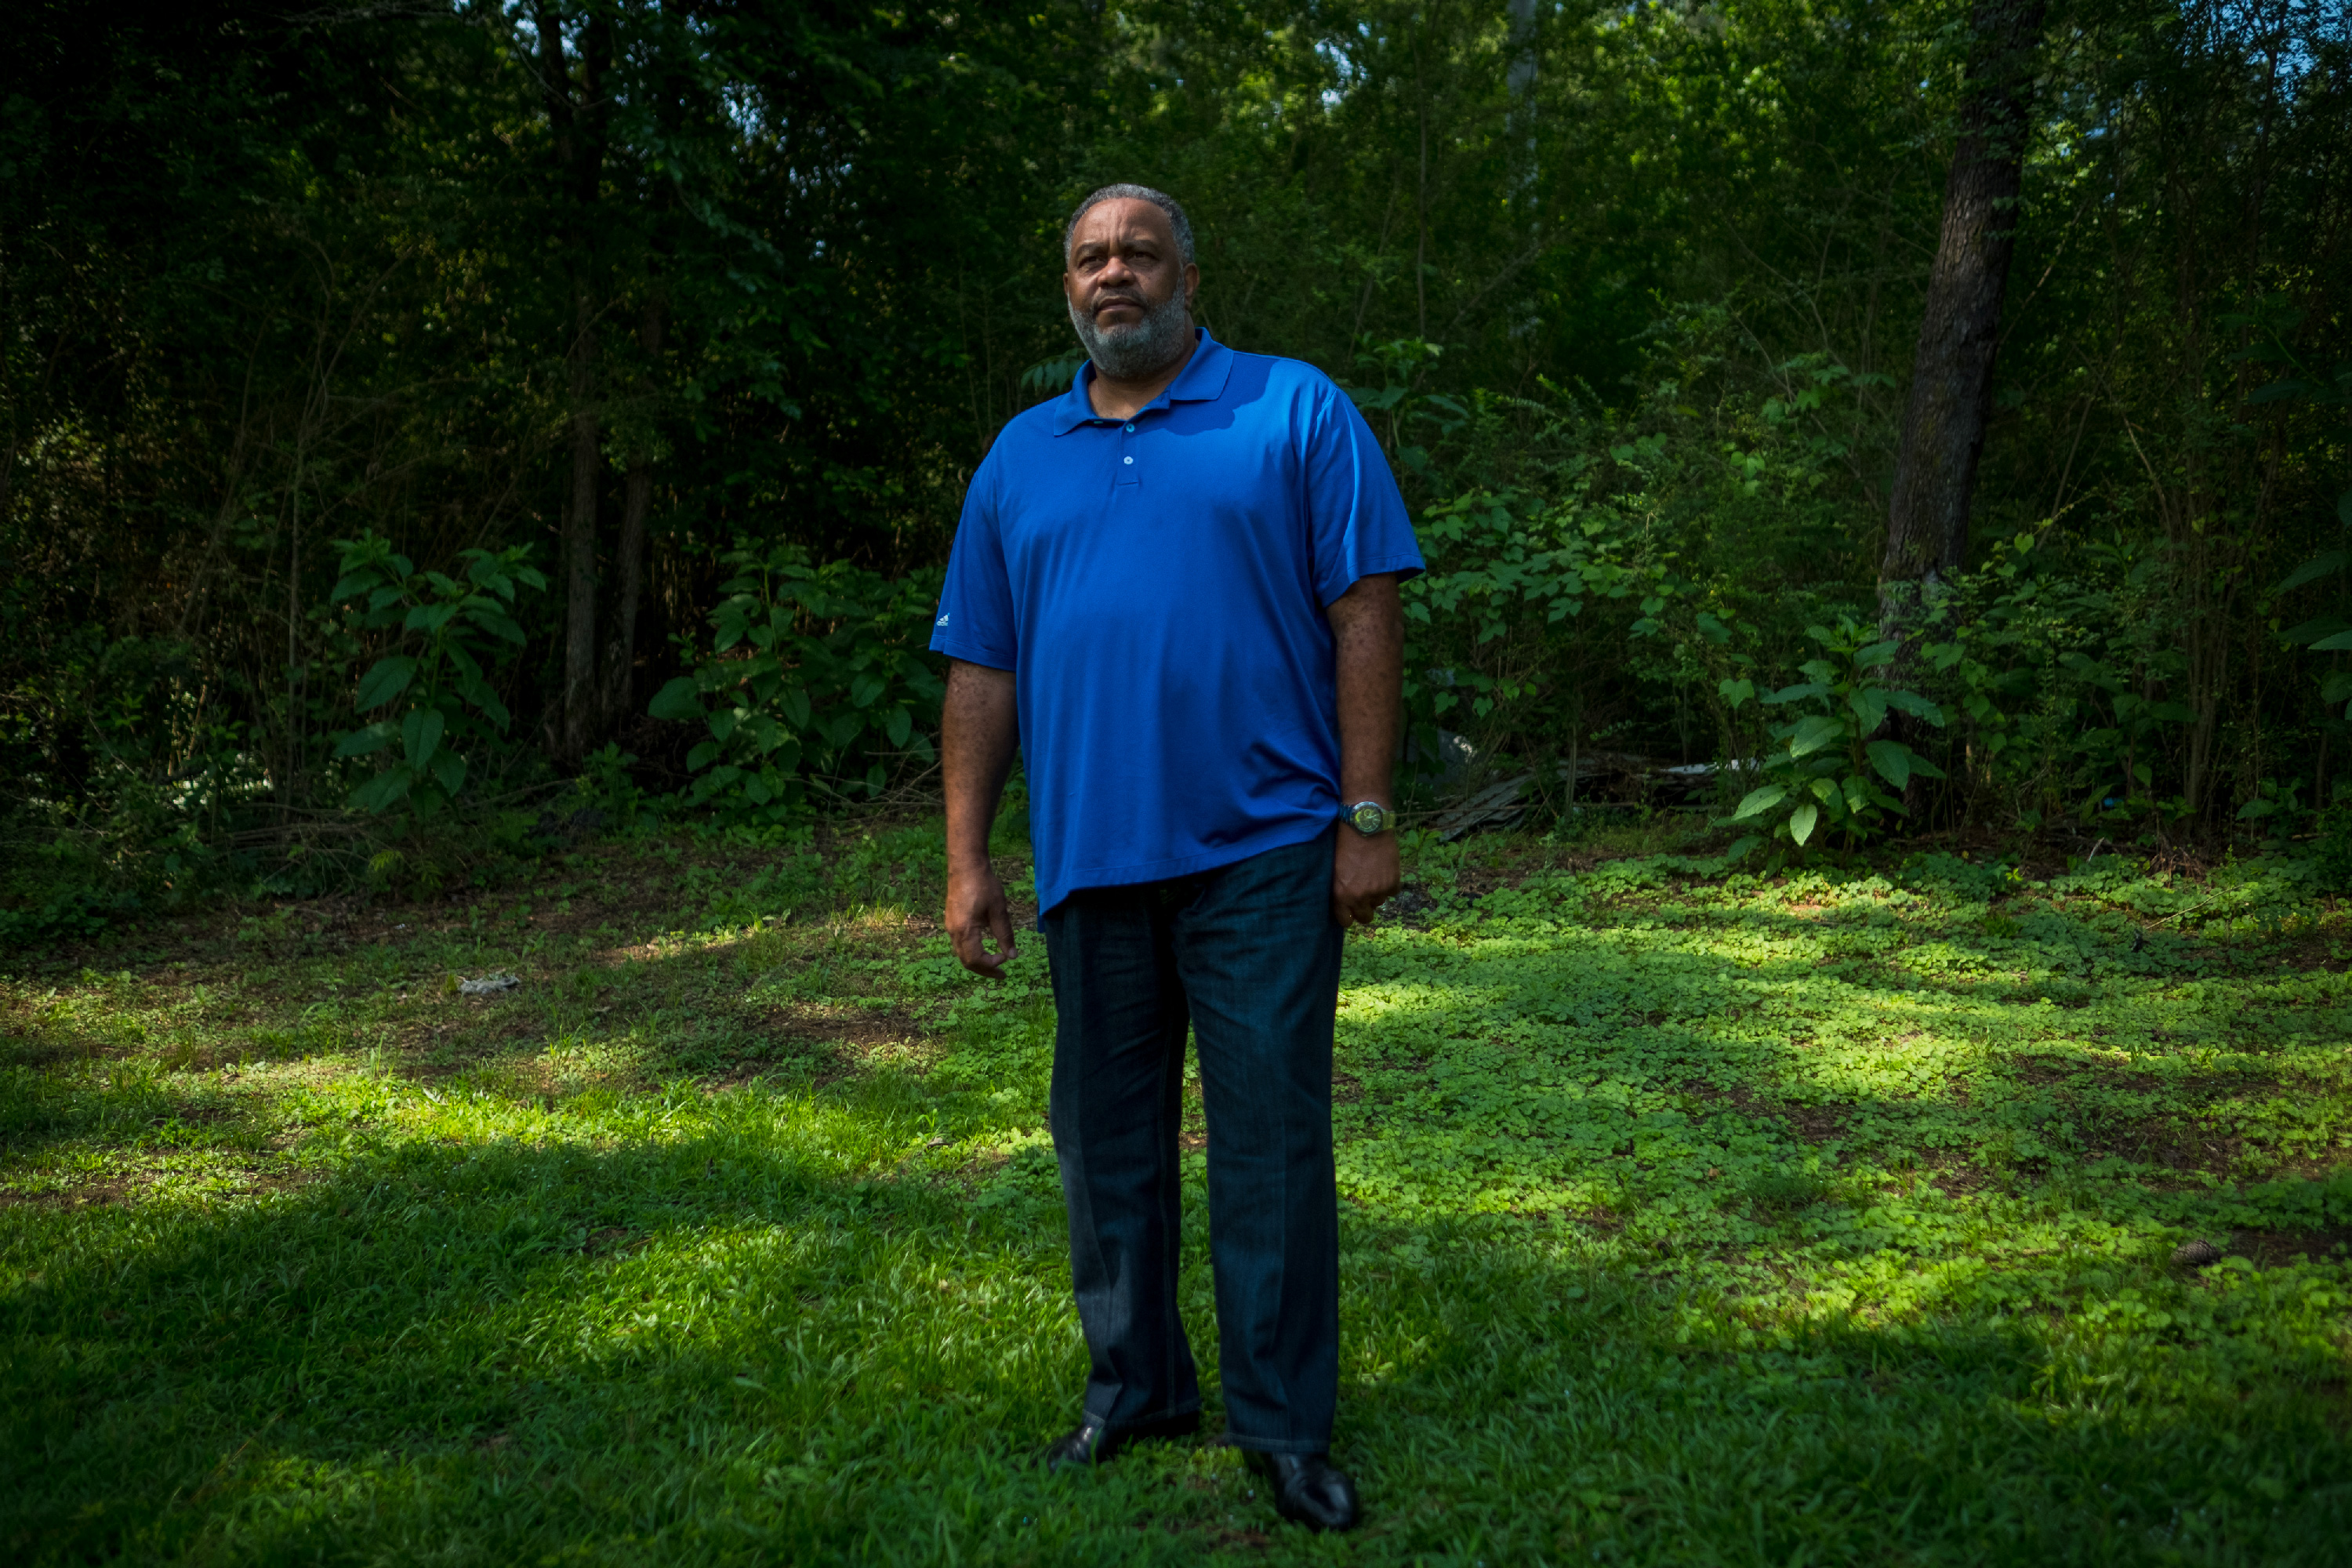 """Anthony Ray Hinton stands near the spot in the yard of his home in Quinton, Alabama, Sunday, June 3, 2018, where Alabama police officers came to arrest him for crimes he didn't commit in 1985. When he is not traveling, Hinton says he spends a lot of time outdoors. """"It just gives me a sense of belonging. When one has been locked up, the last place I want to be is stuck in the house. I love the outdoors."""" Hinton spent 30 years on death row after he was wrongfully incarcerated for two murders he did not commit. His recently released his memoir, """"The Sun Does Shine: How I Found Life and Freedom on Death Row.""""<br /> (Tamika Moore for The Intercept)"""